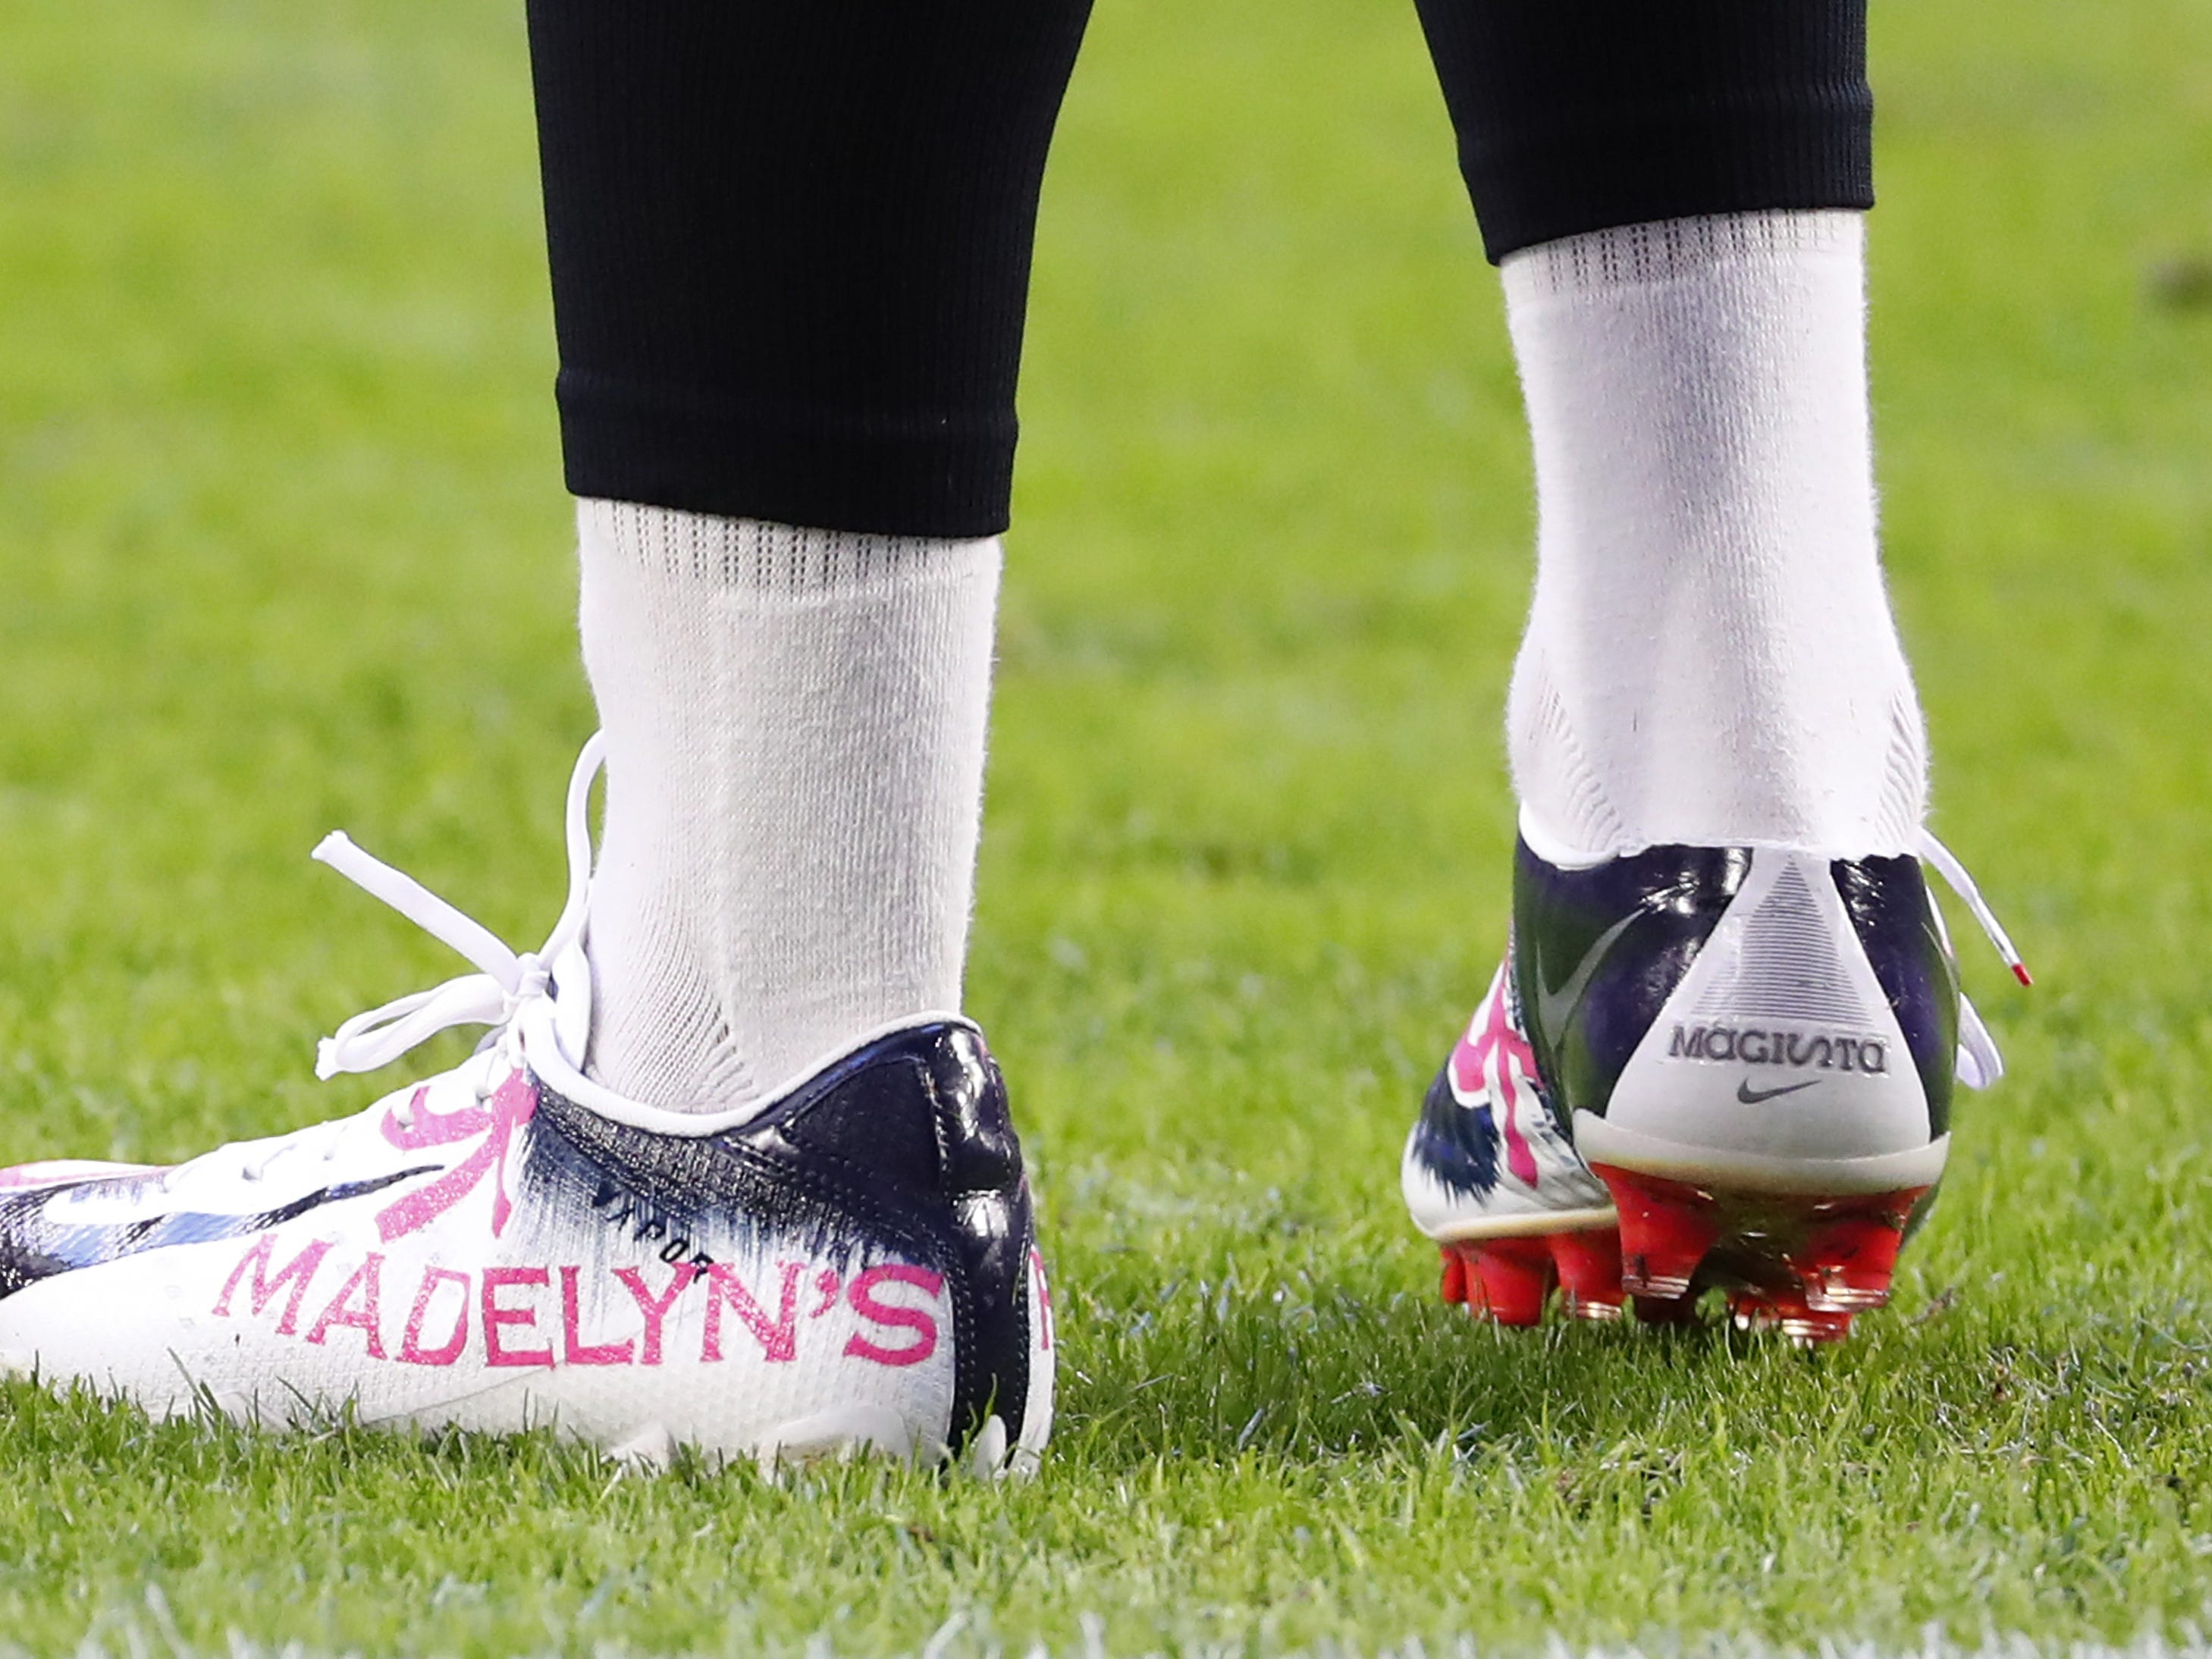 Arizona Cardinals punter Andy Lee (2) wears cleats as part of the NFL's My Cause My Cleats campaign before playing against the Detroit Lions December 9.